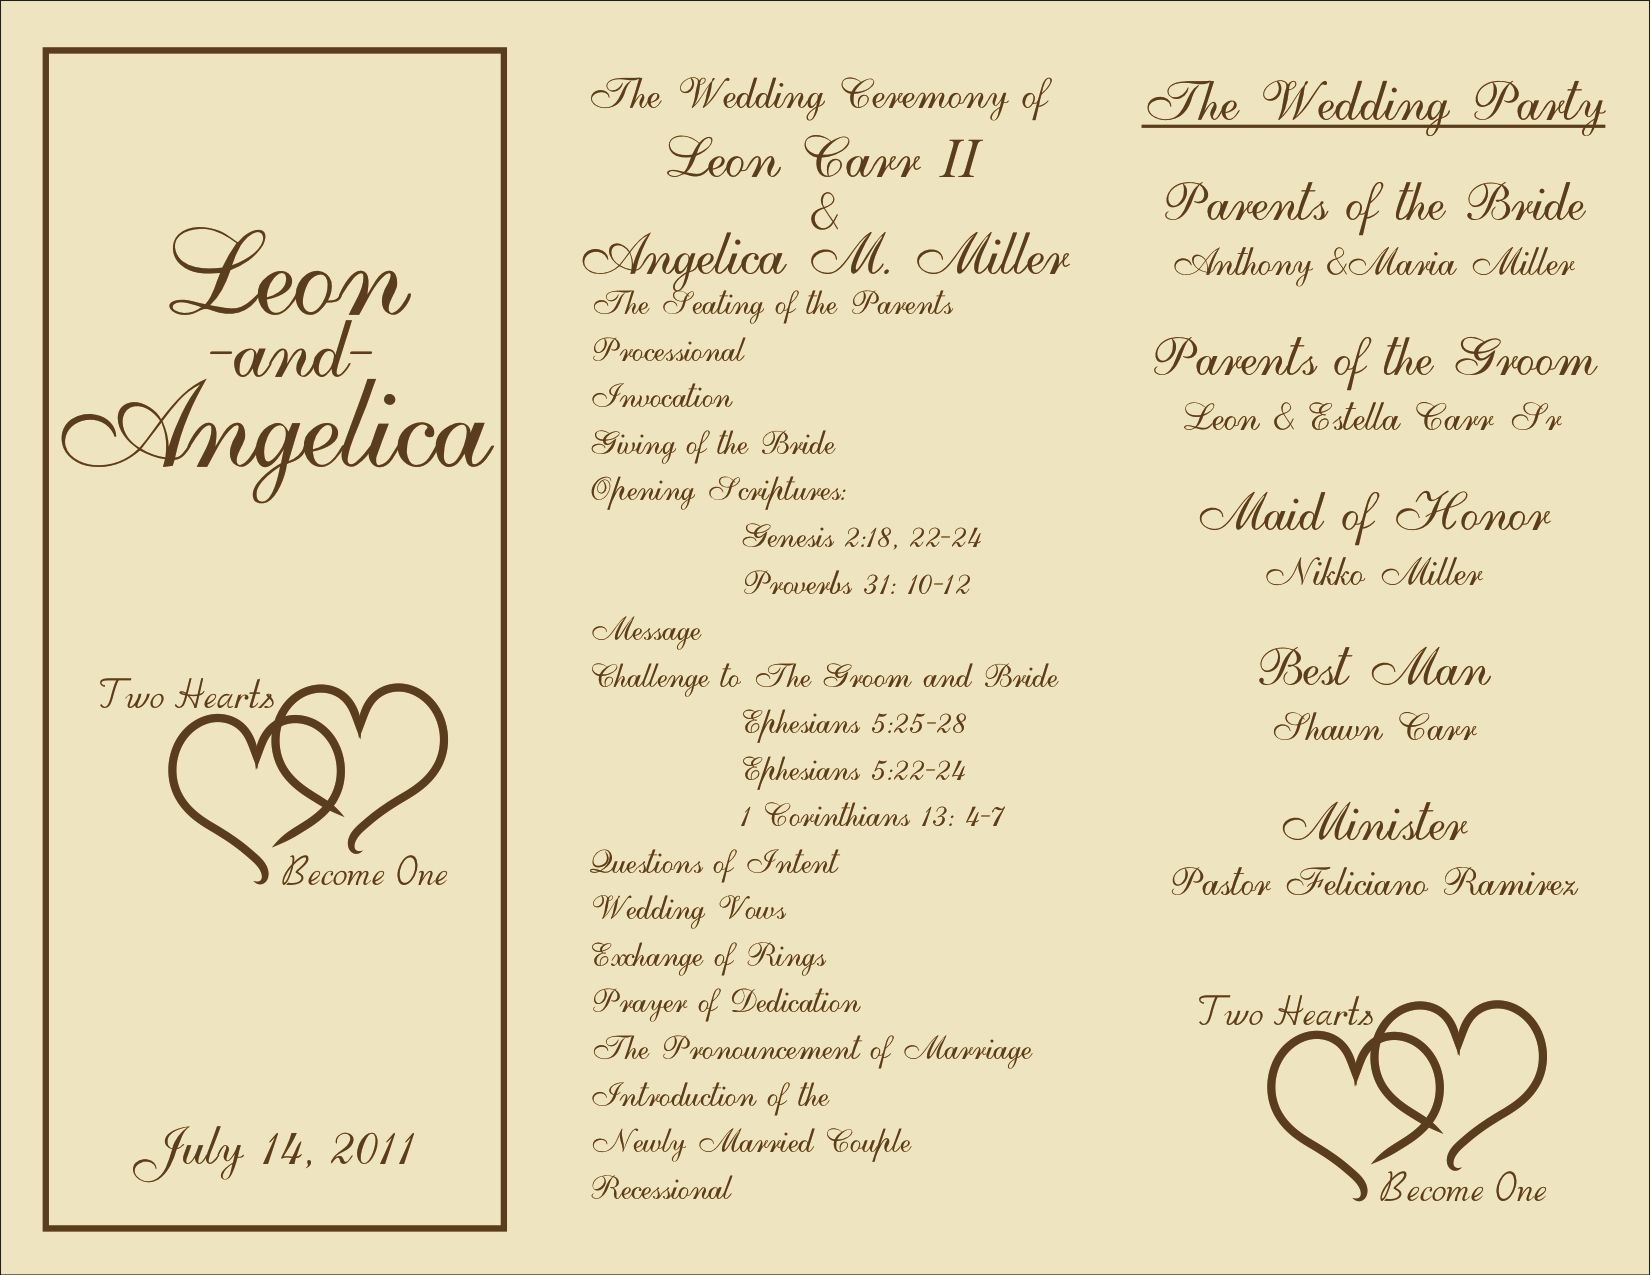 003 Wedding Program Free Template ~ Ulyssesroom - Free Printable Wedding Program Templates Word